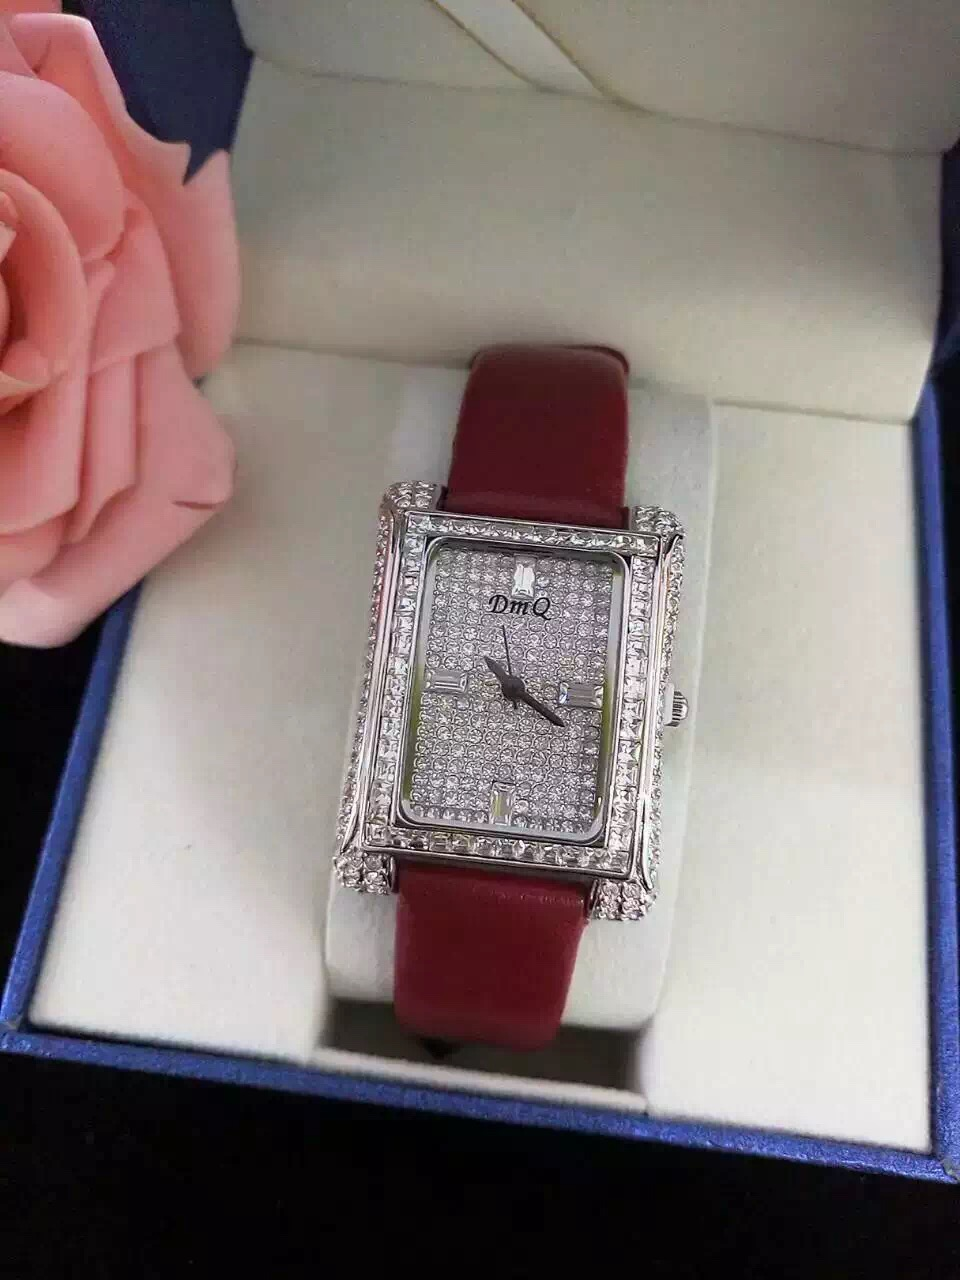 DMQ2016 new fashion leather fashion watches with rectangular artificial diamond